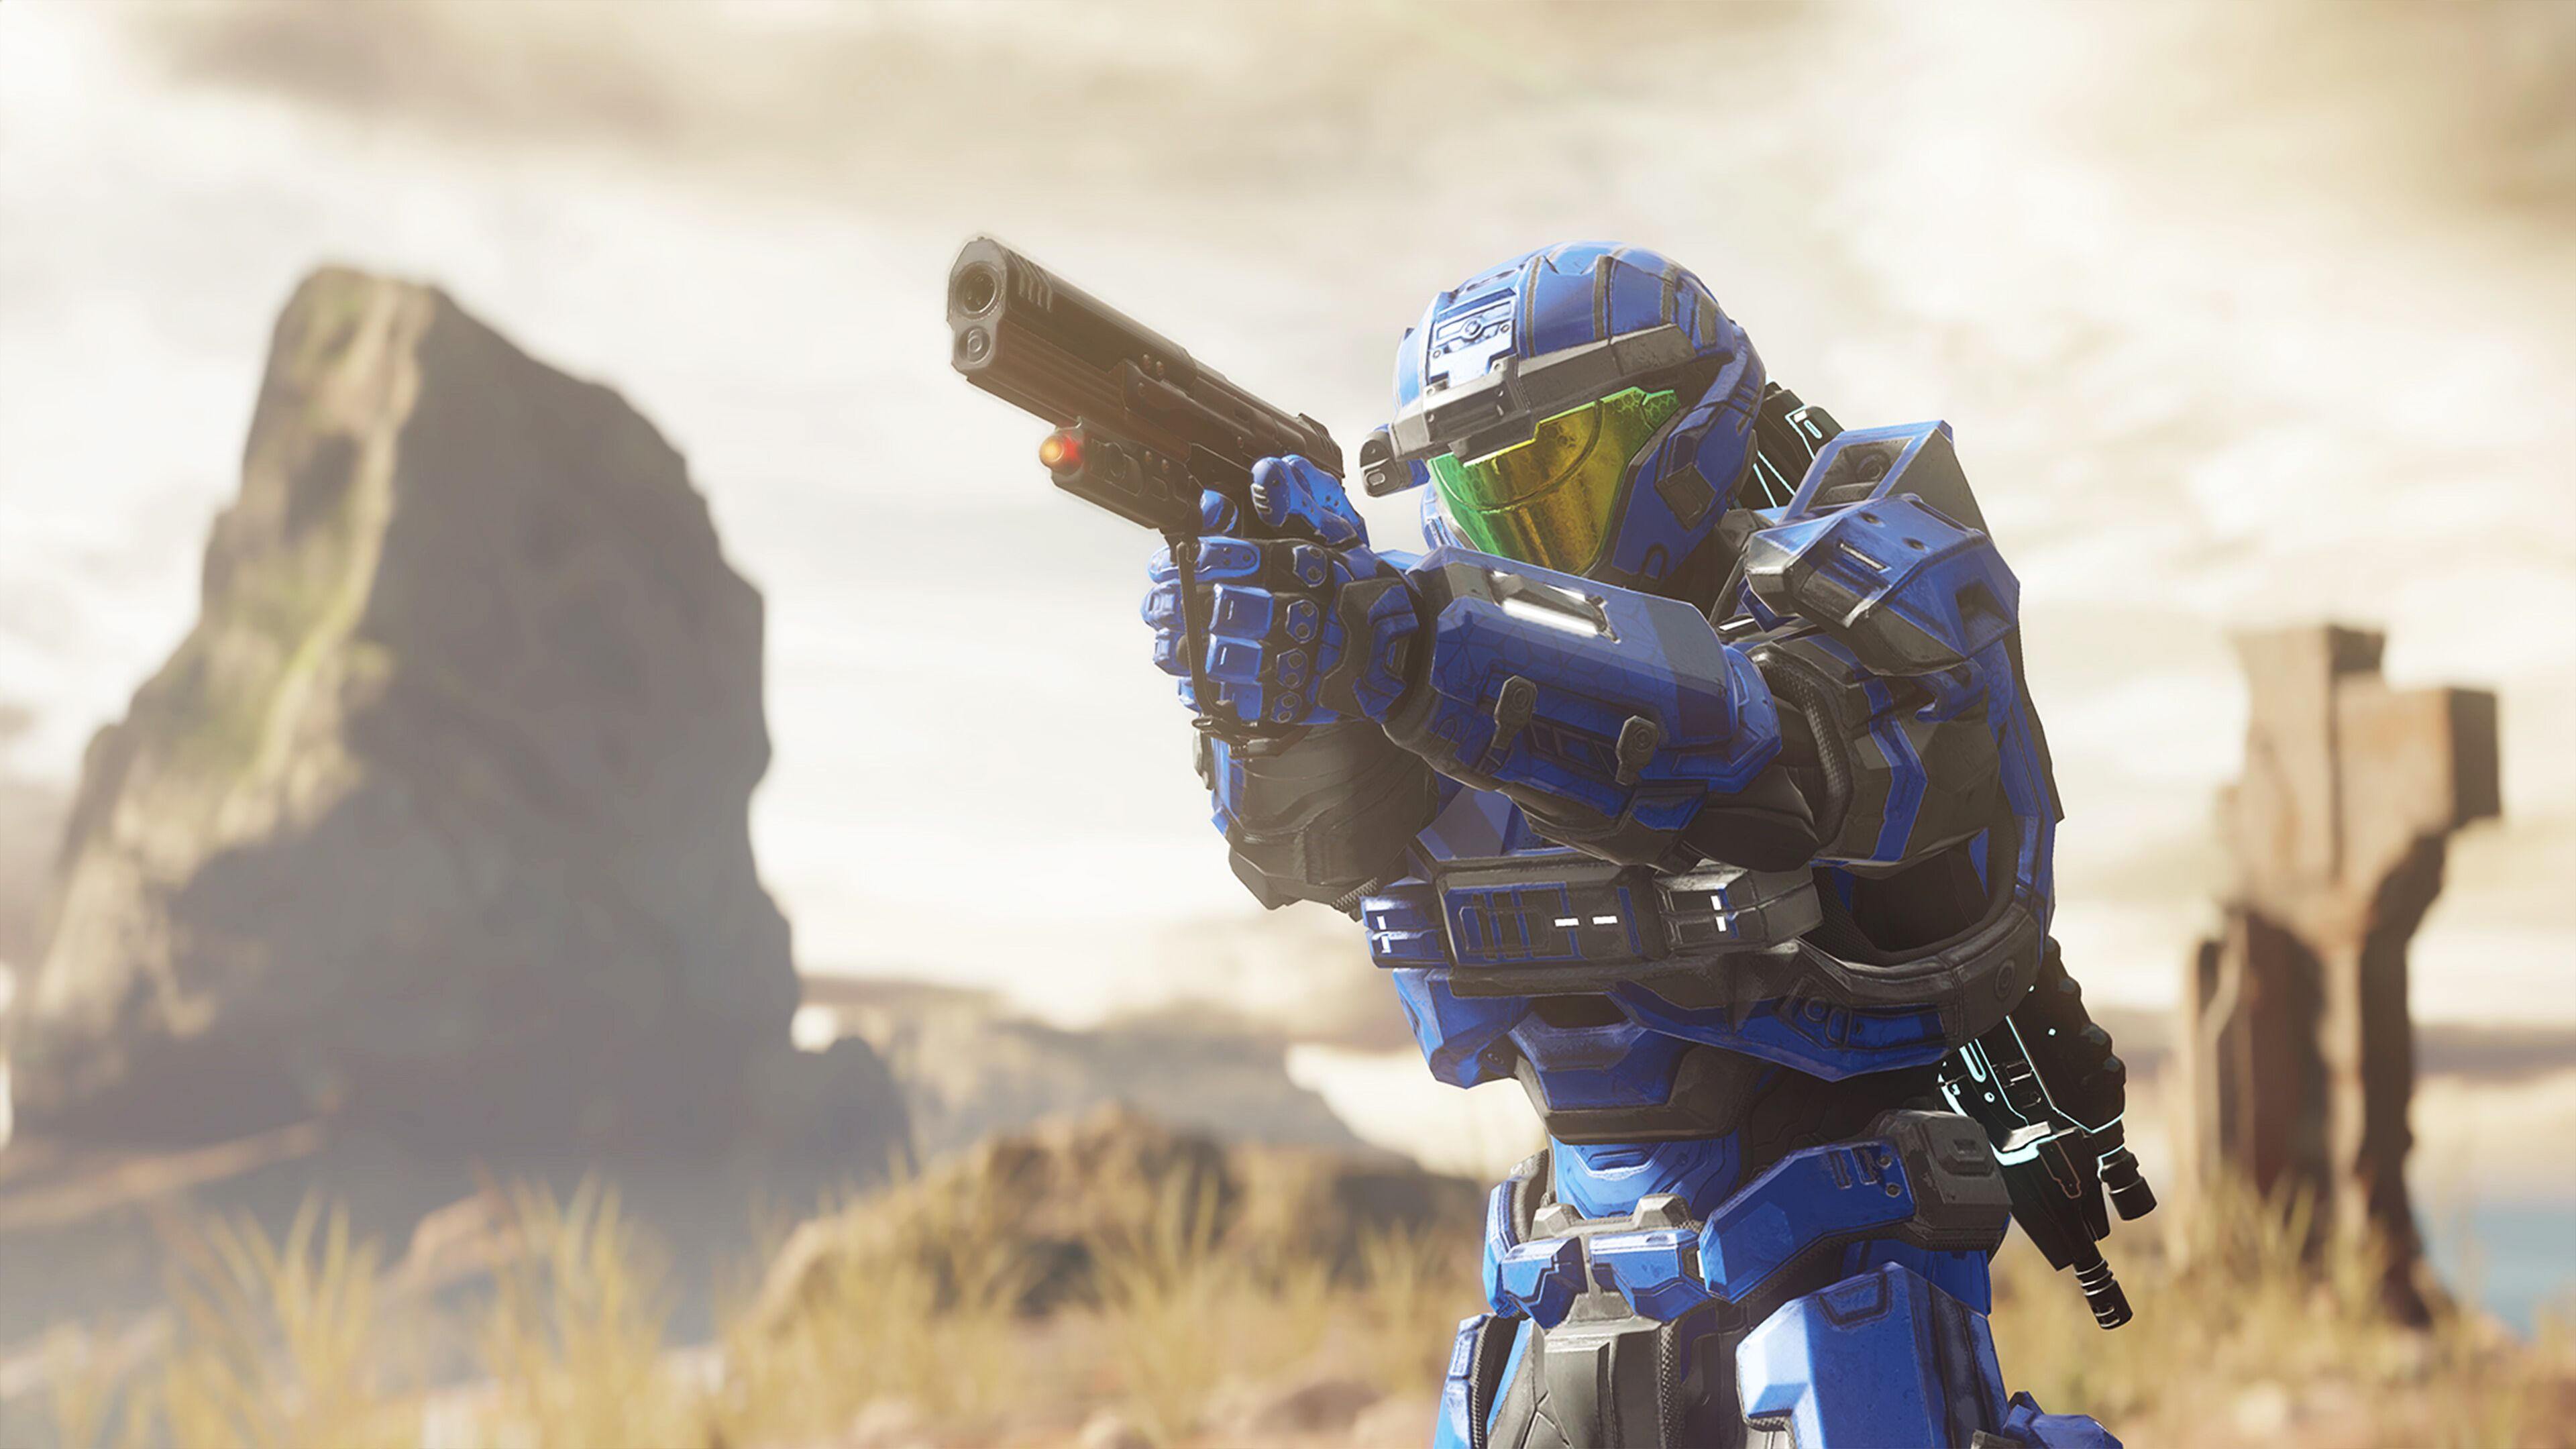 Halo Online: The open source multiplayer winning over fans